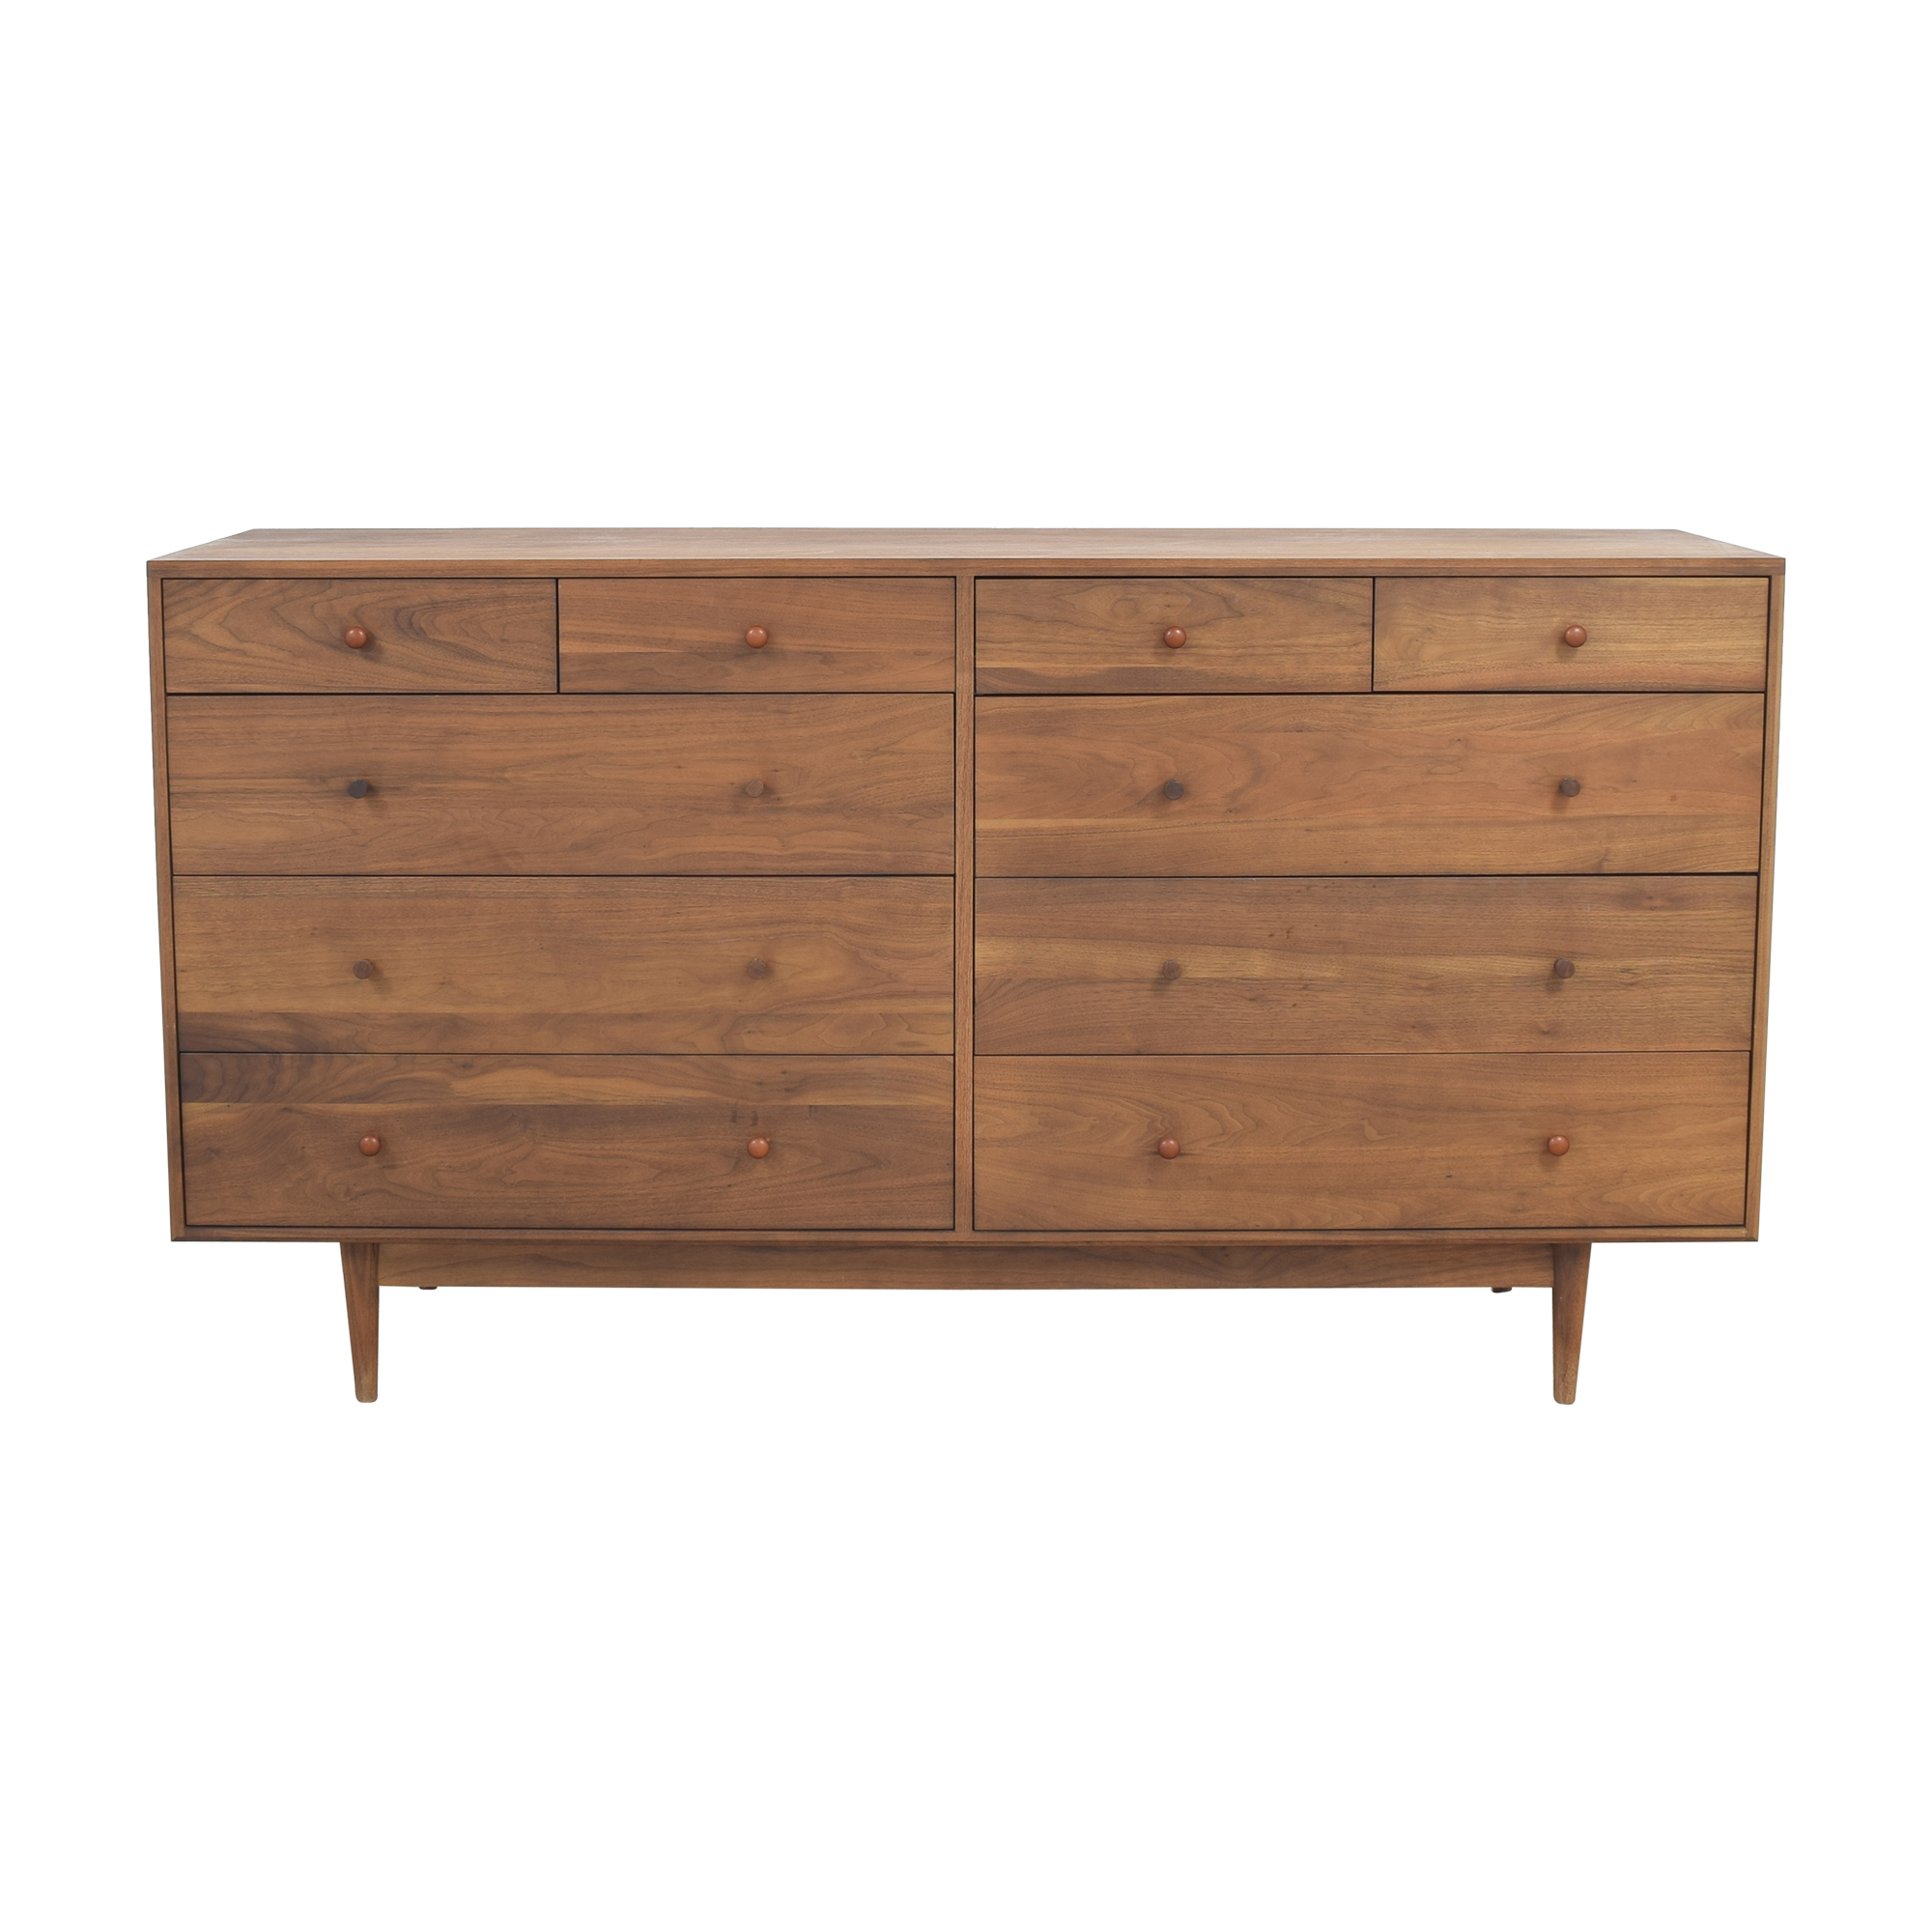 Room & Board Grove Ten Drawer Dresser sale